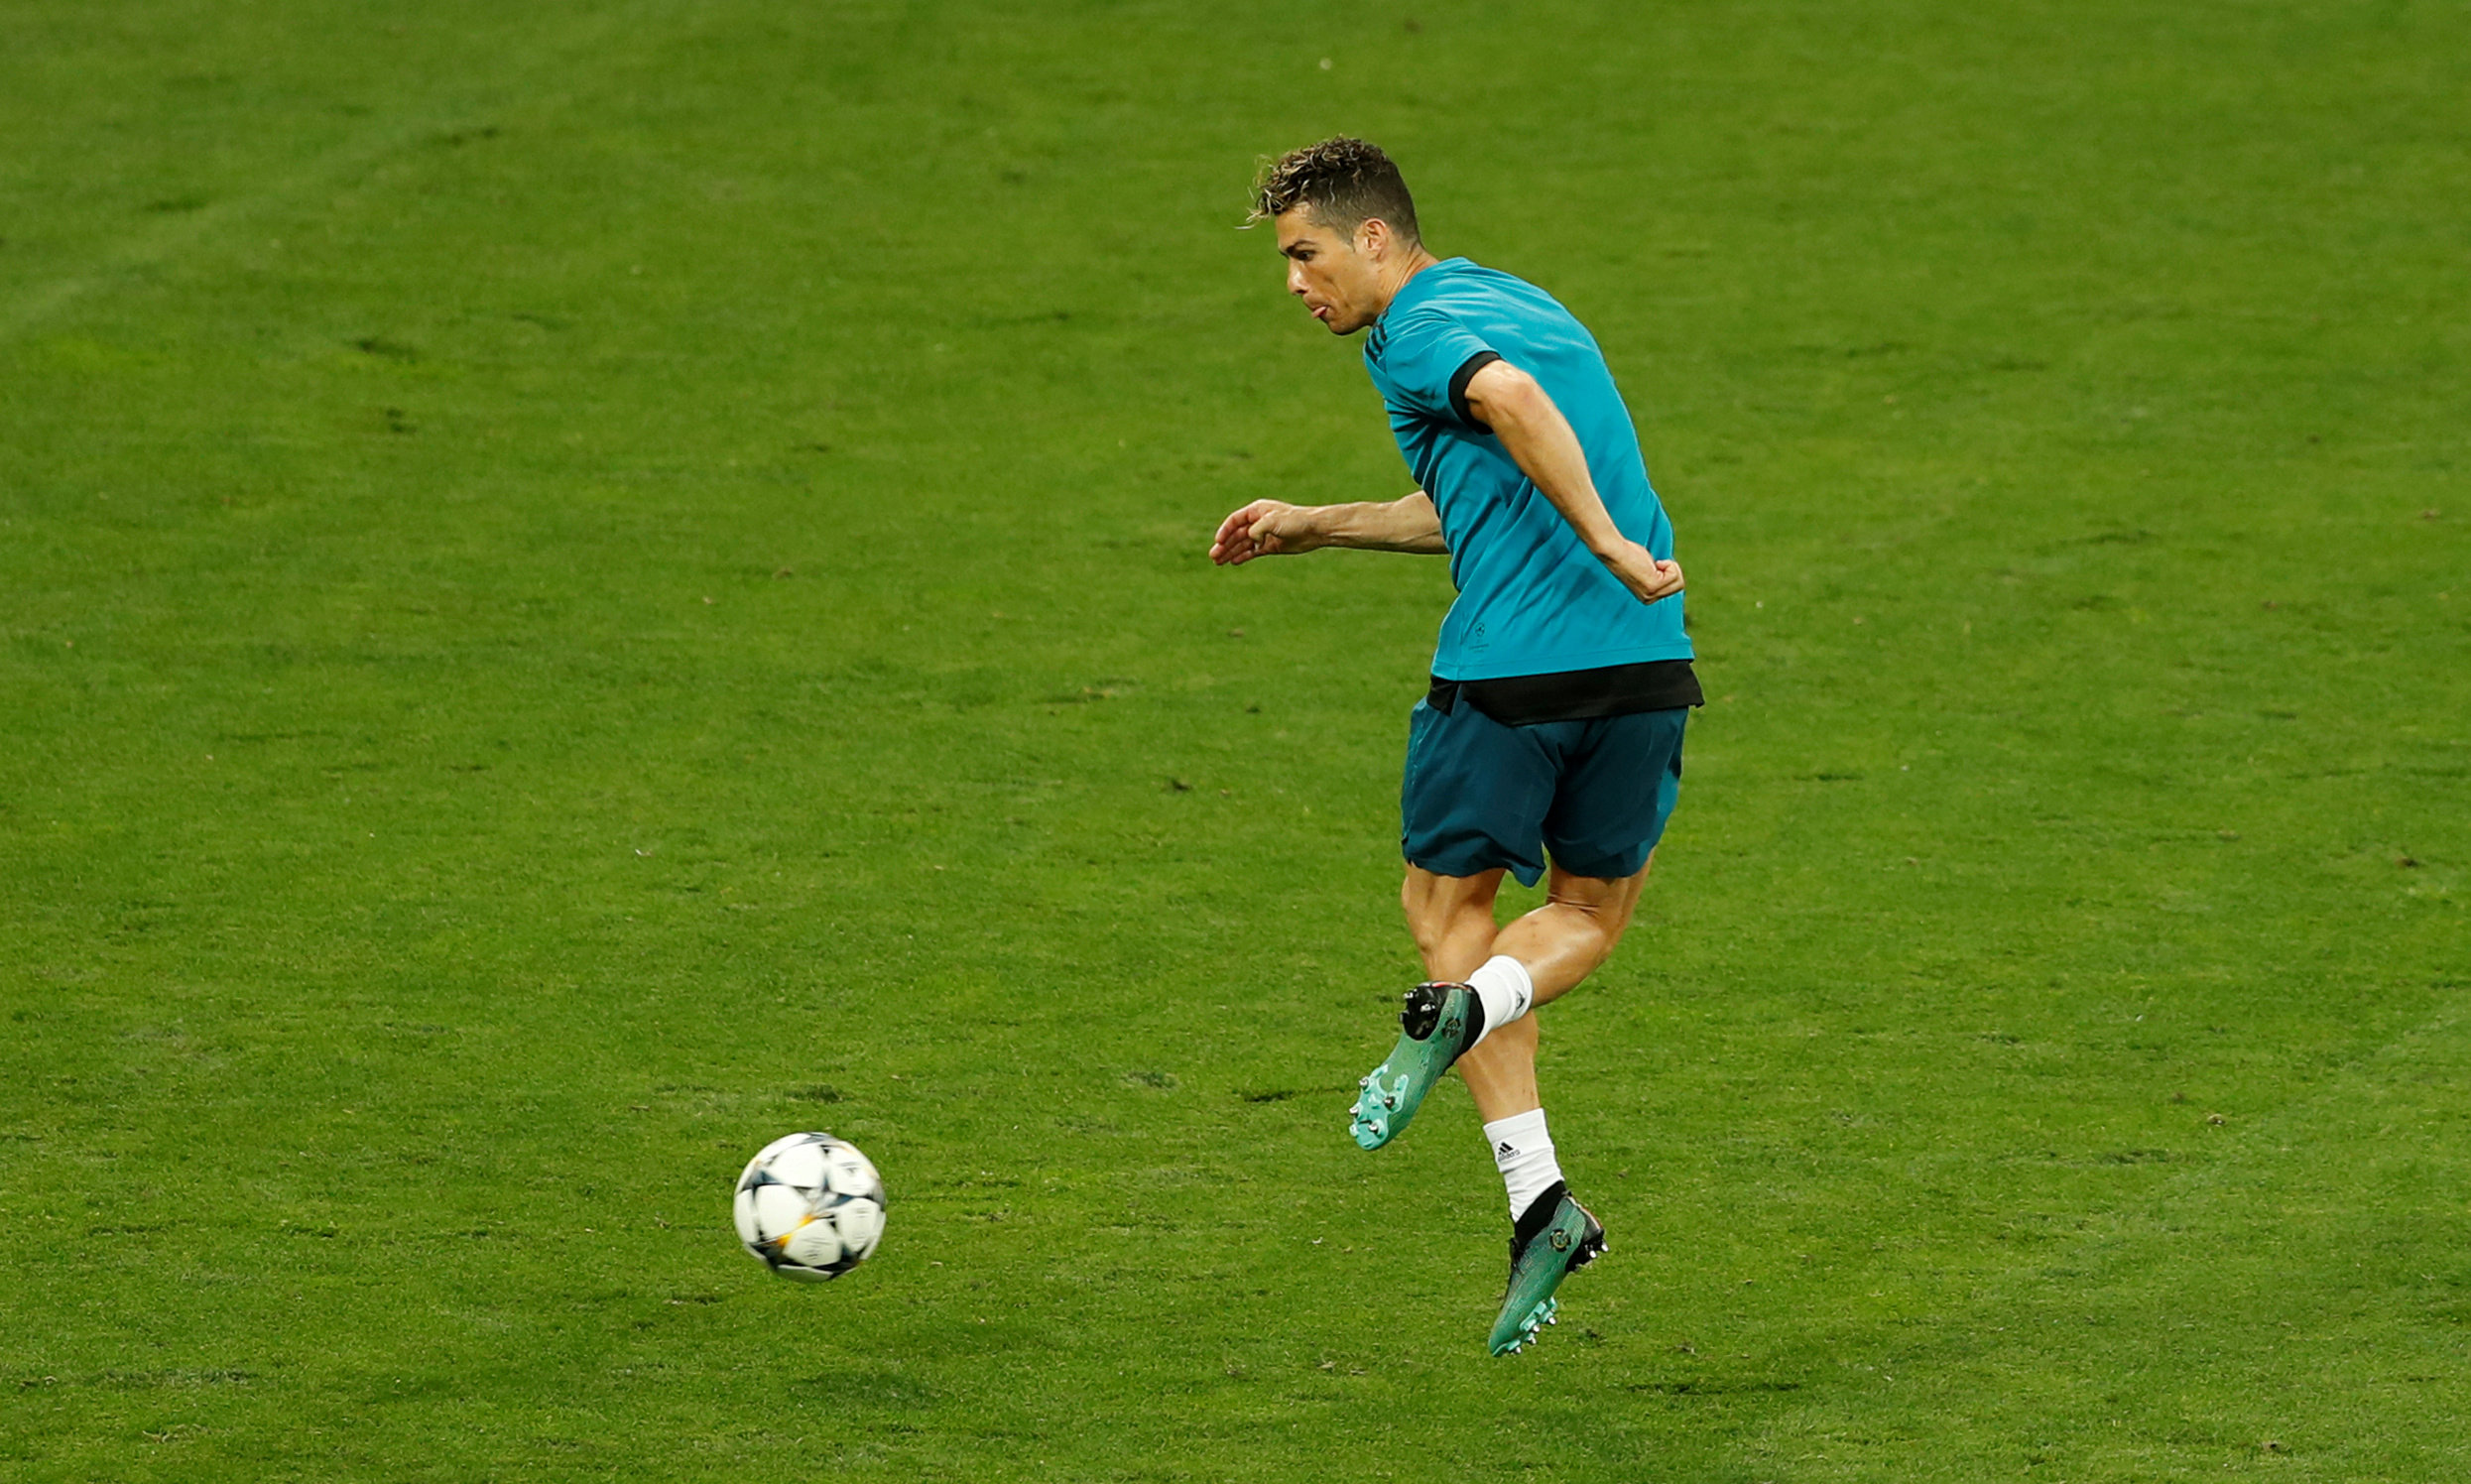 Football: Relentless Ronaldo can break more Champions League records in final